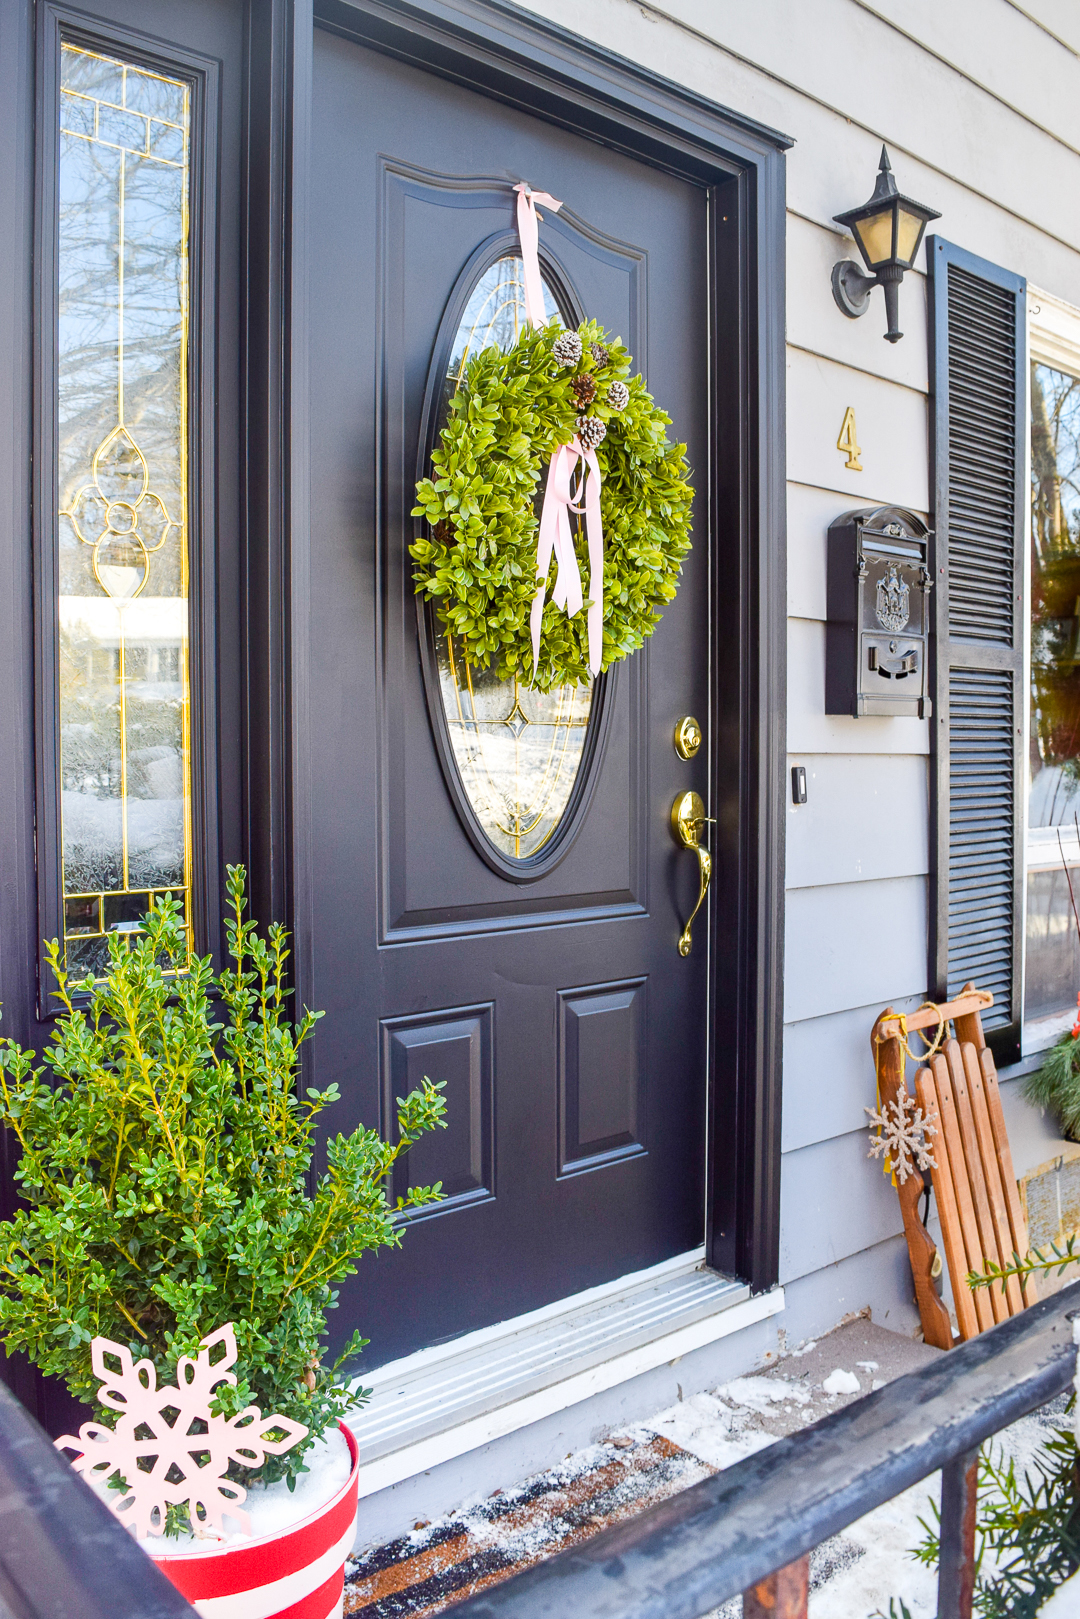 Give your home a classic & colourful holiday porch makeover with the help of Behr paint! Who doesn't need a sexy new black door, and colourful window baskets.